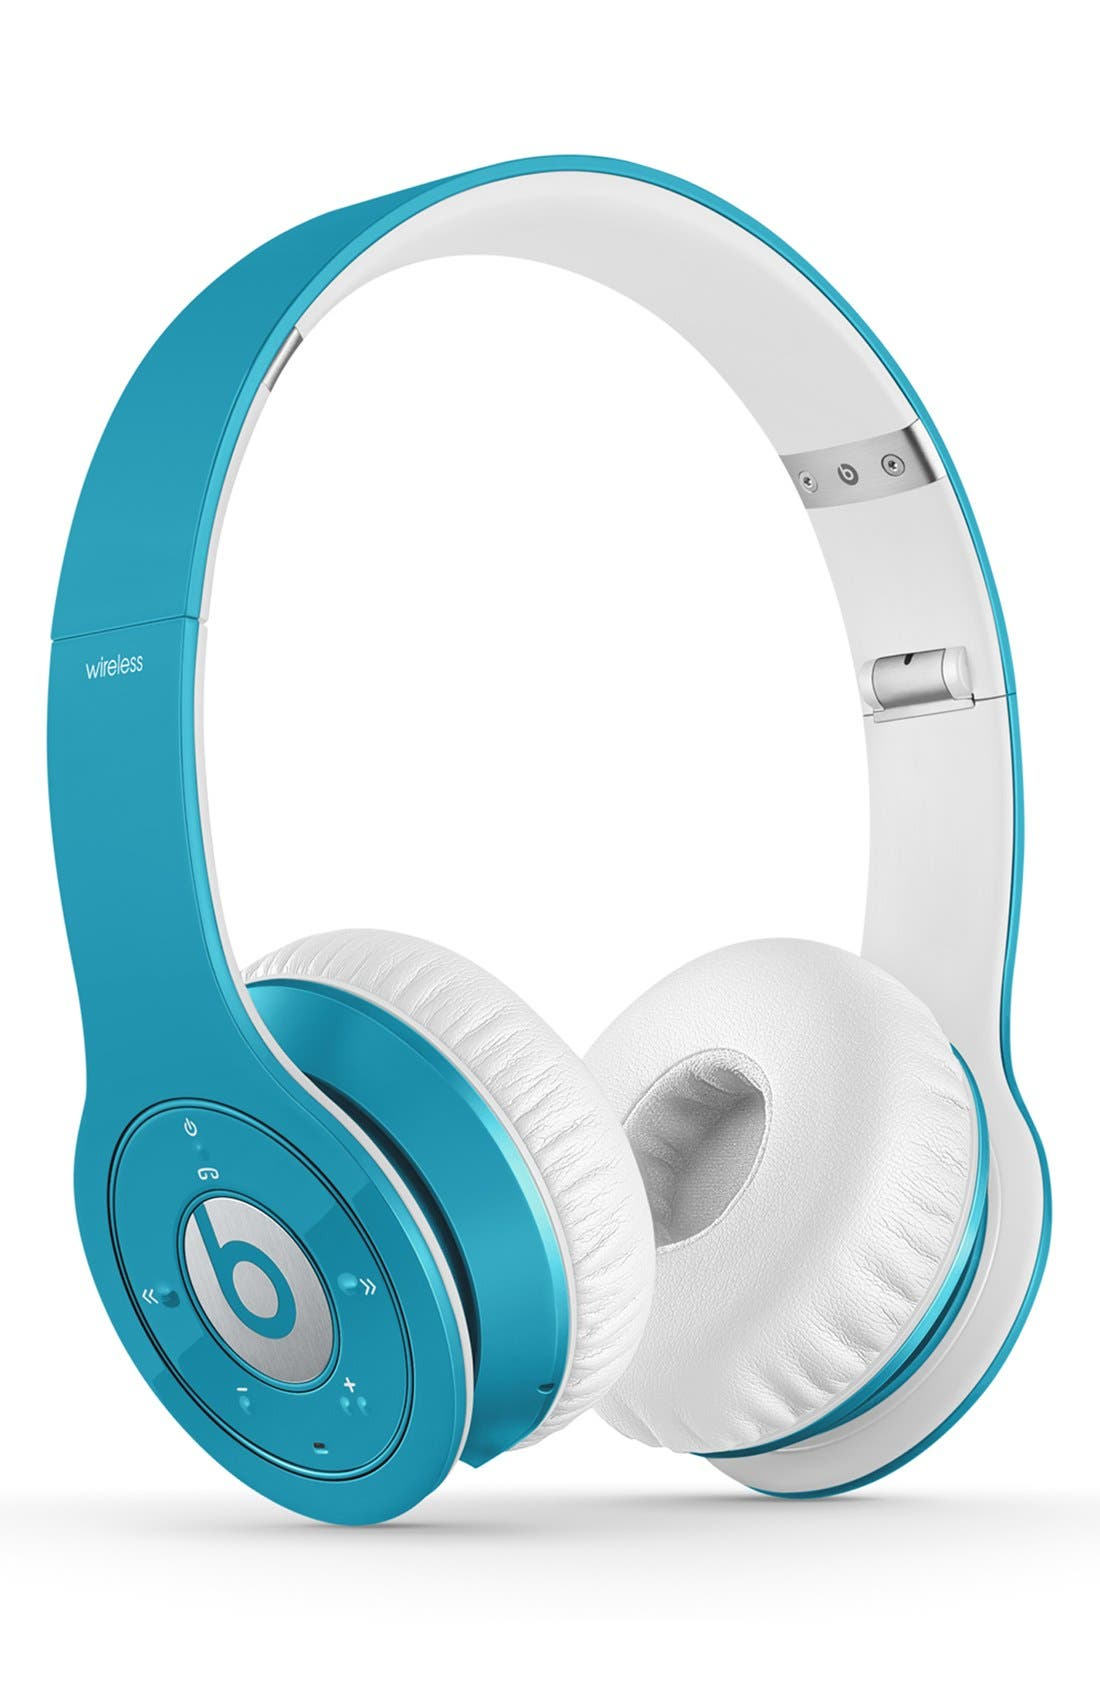 Alternate Image 1 Selected - Beats by Dr. Dre™ High Definition Wireless On-Ear Headphones